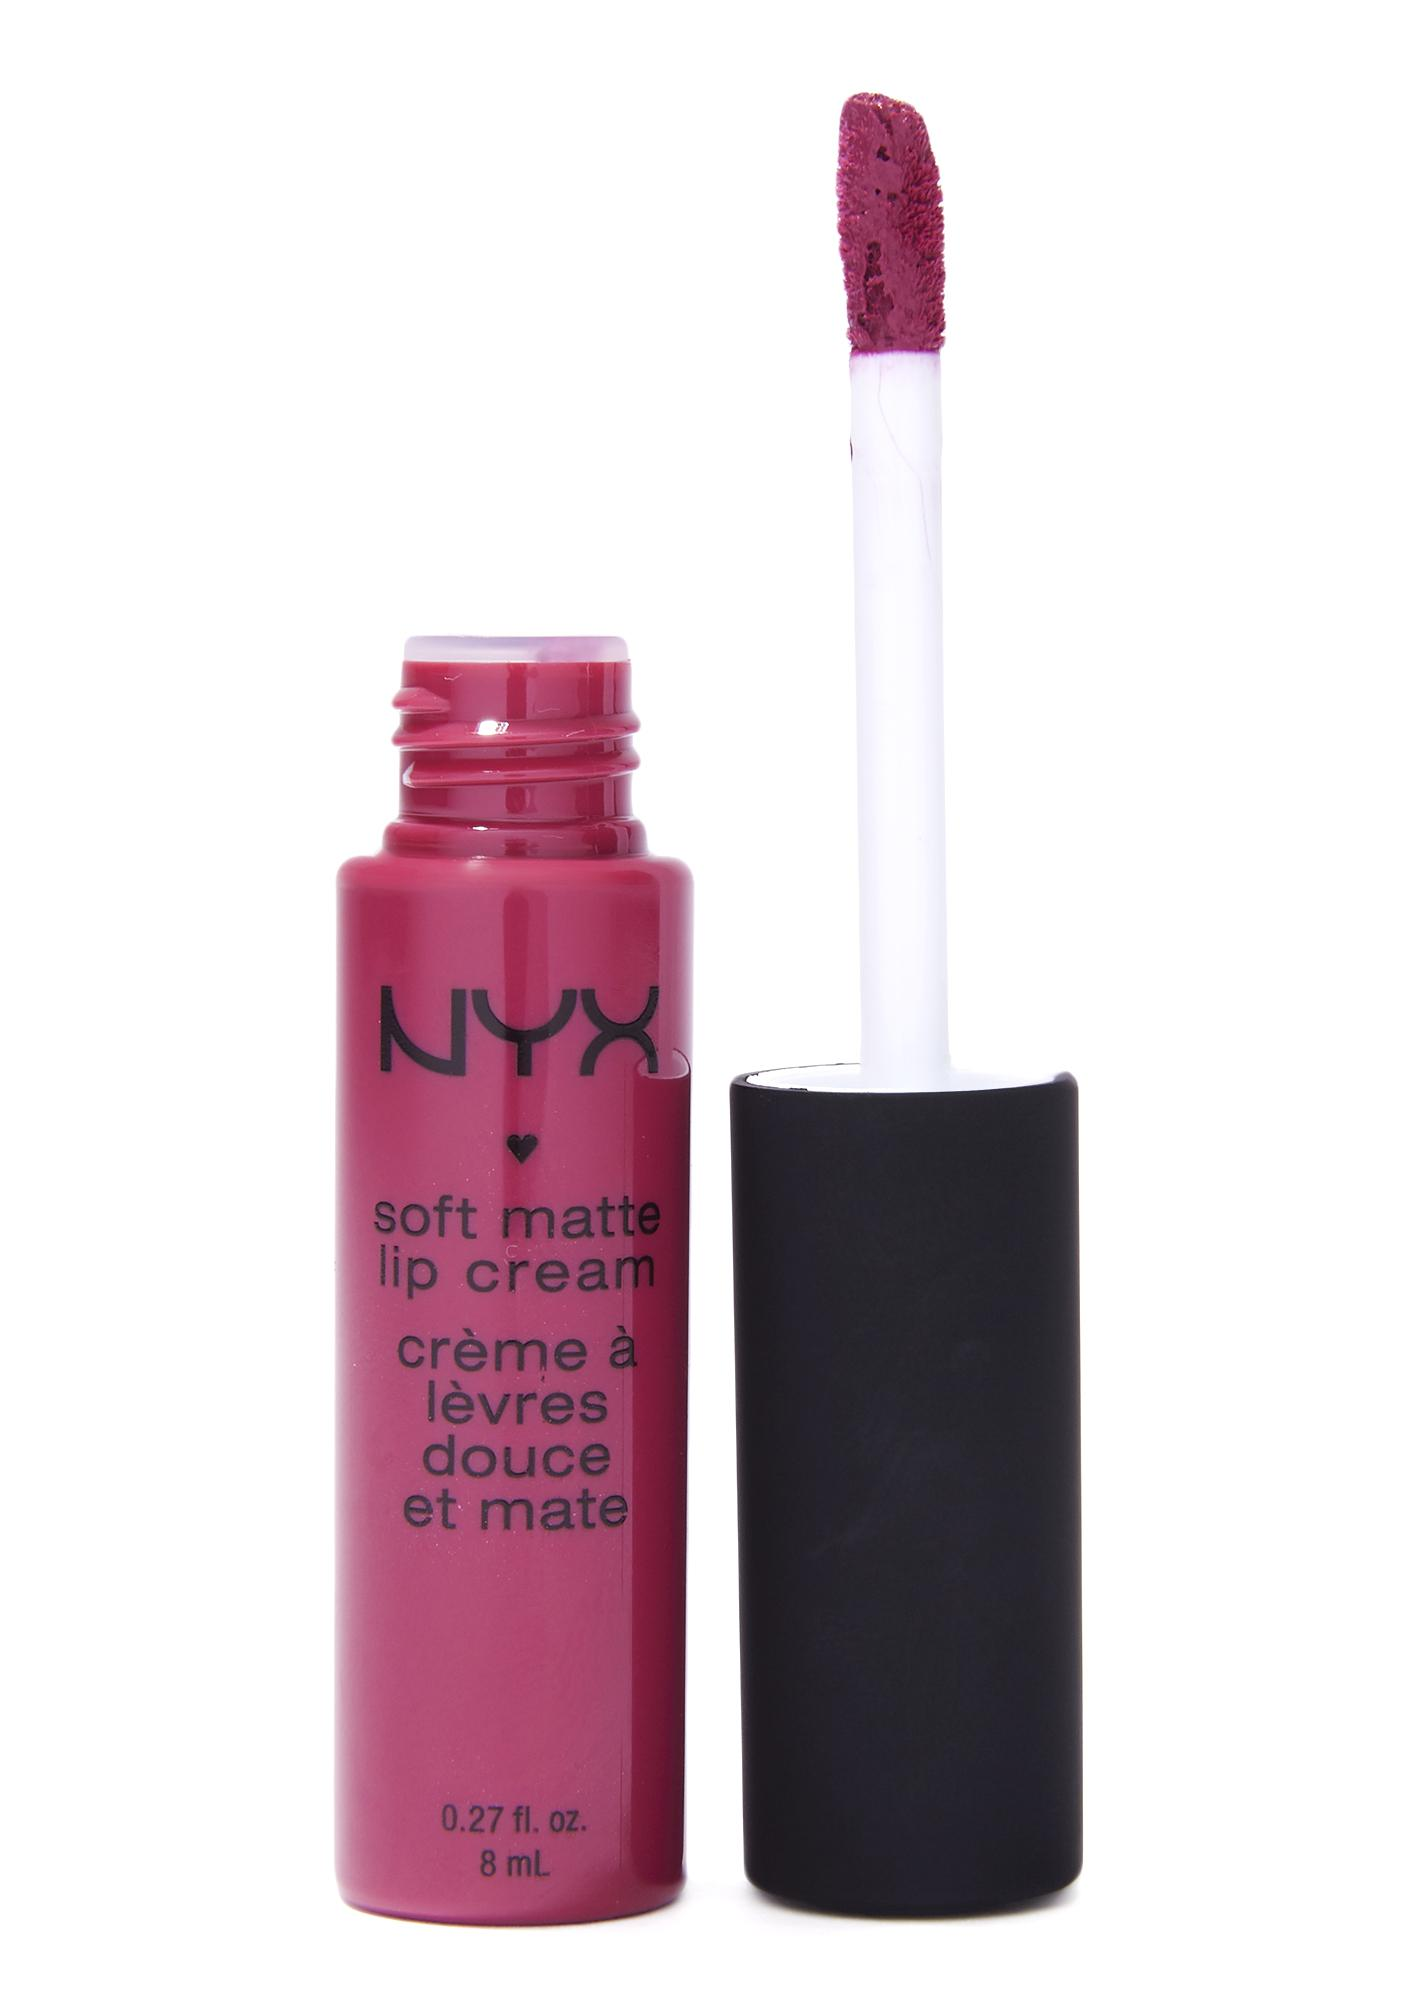 NYX Prague Soft Matte Lip Cream